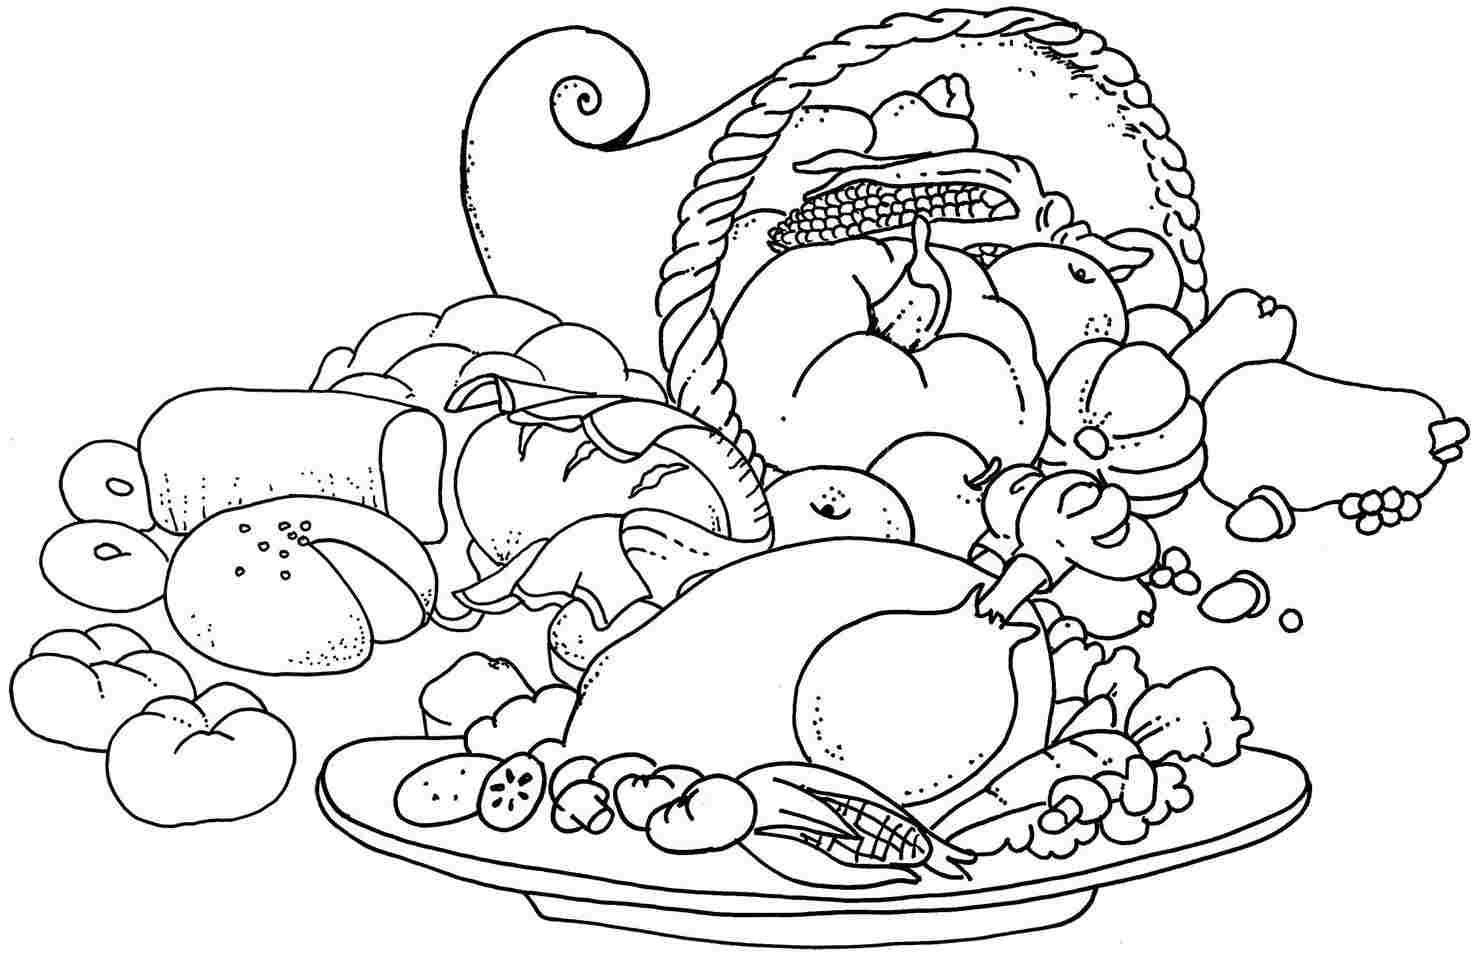 Free Coloring Sheets Of Food  Latest Food Hamburger Models Coloring Pages For Kids